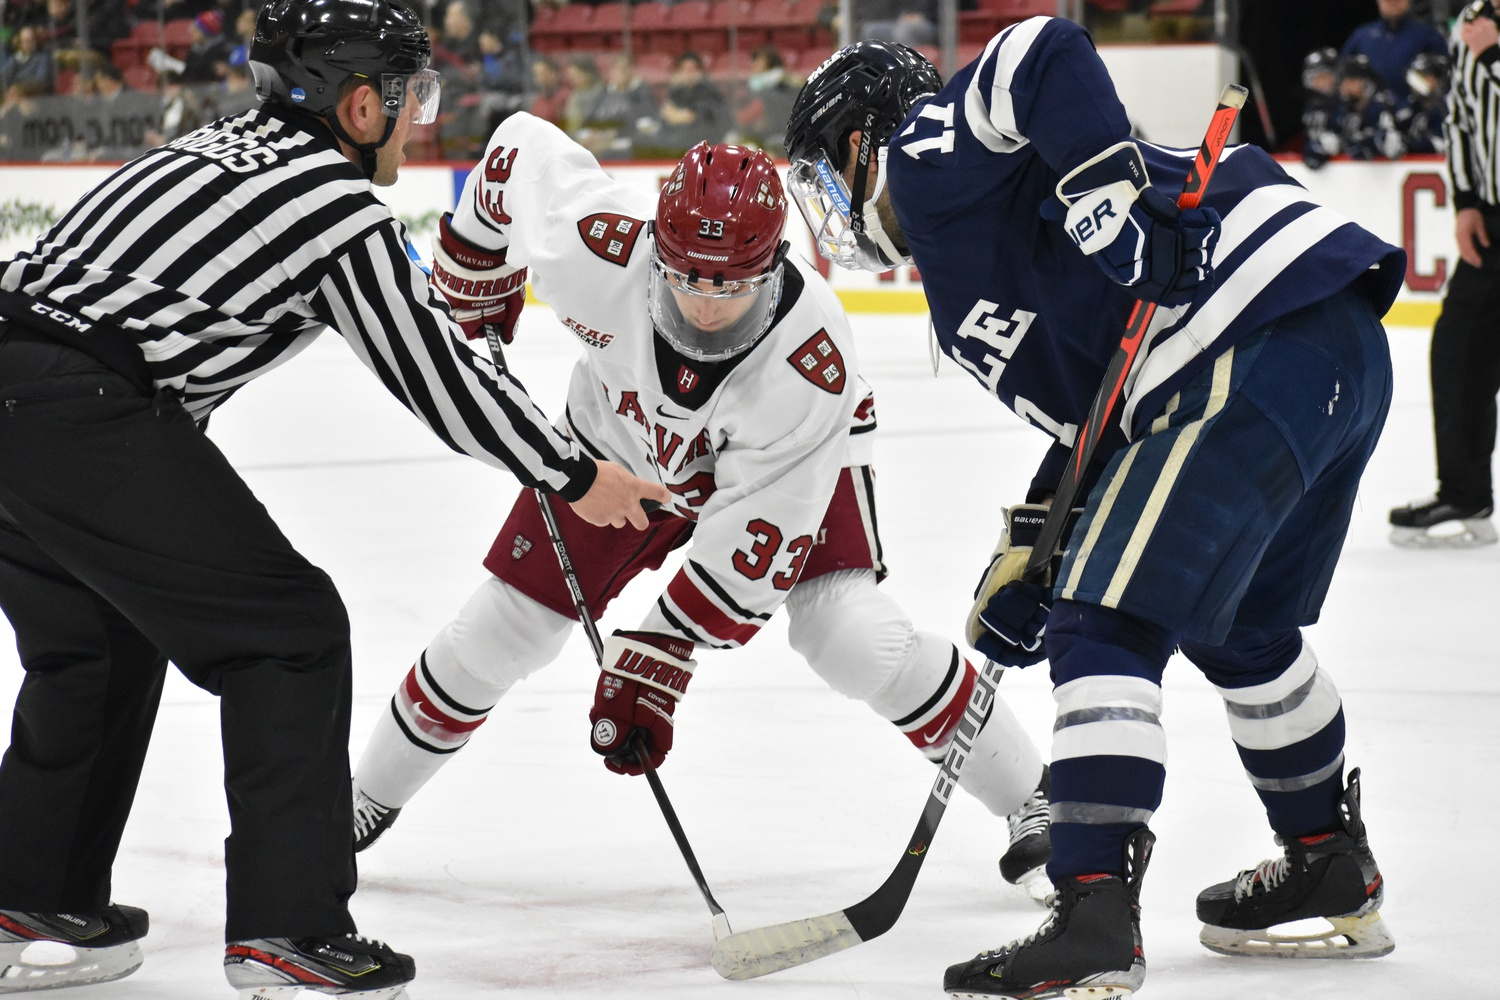 Despite the Crimson's poor start, a late surge allowed Harvard to tie the game.